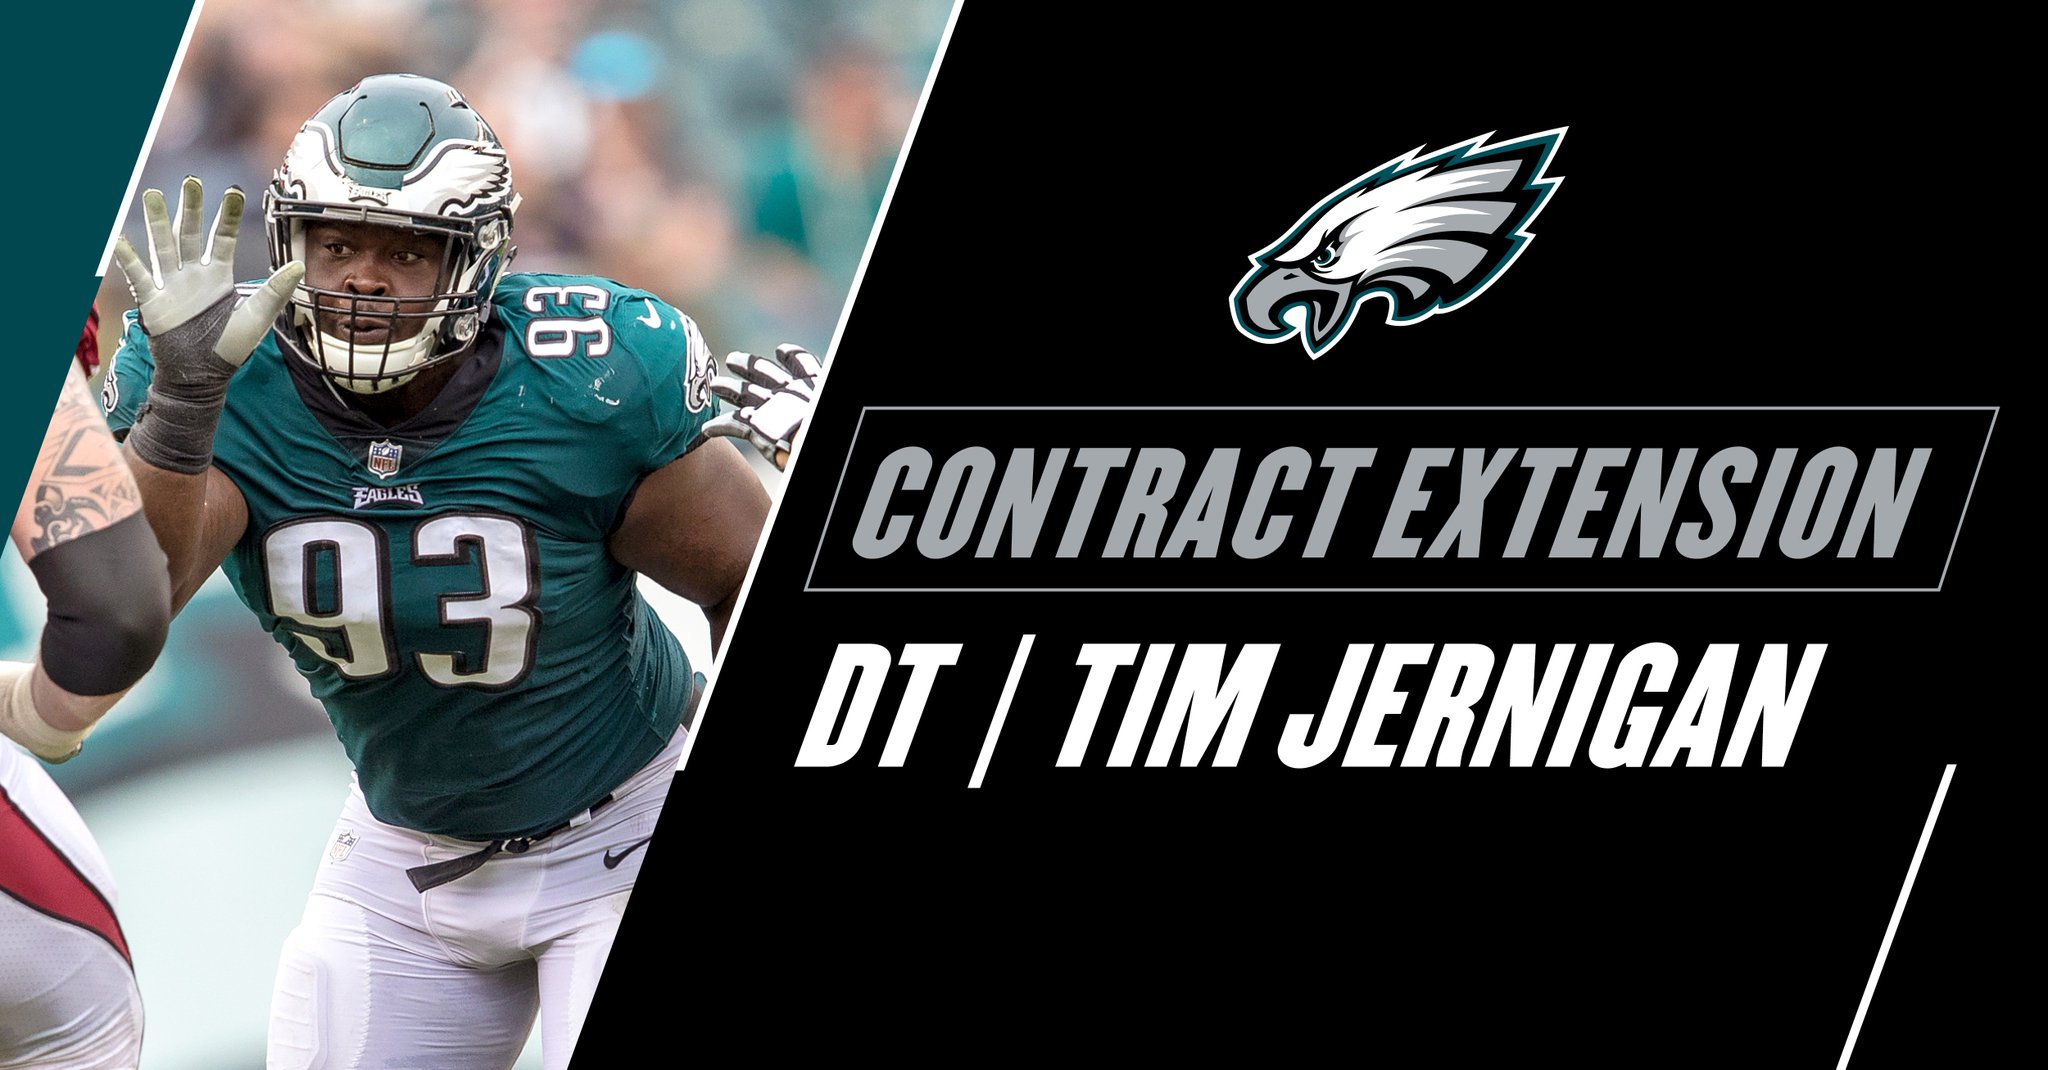 #Eagles have signed DT Tim Jernigan to a four-year contract extension through the 2021 season.  #FlyEaglesFly https://t.co/mjYcOzvbiZ